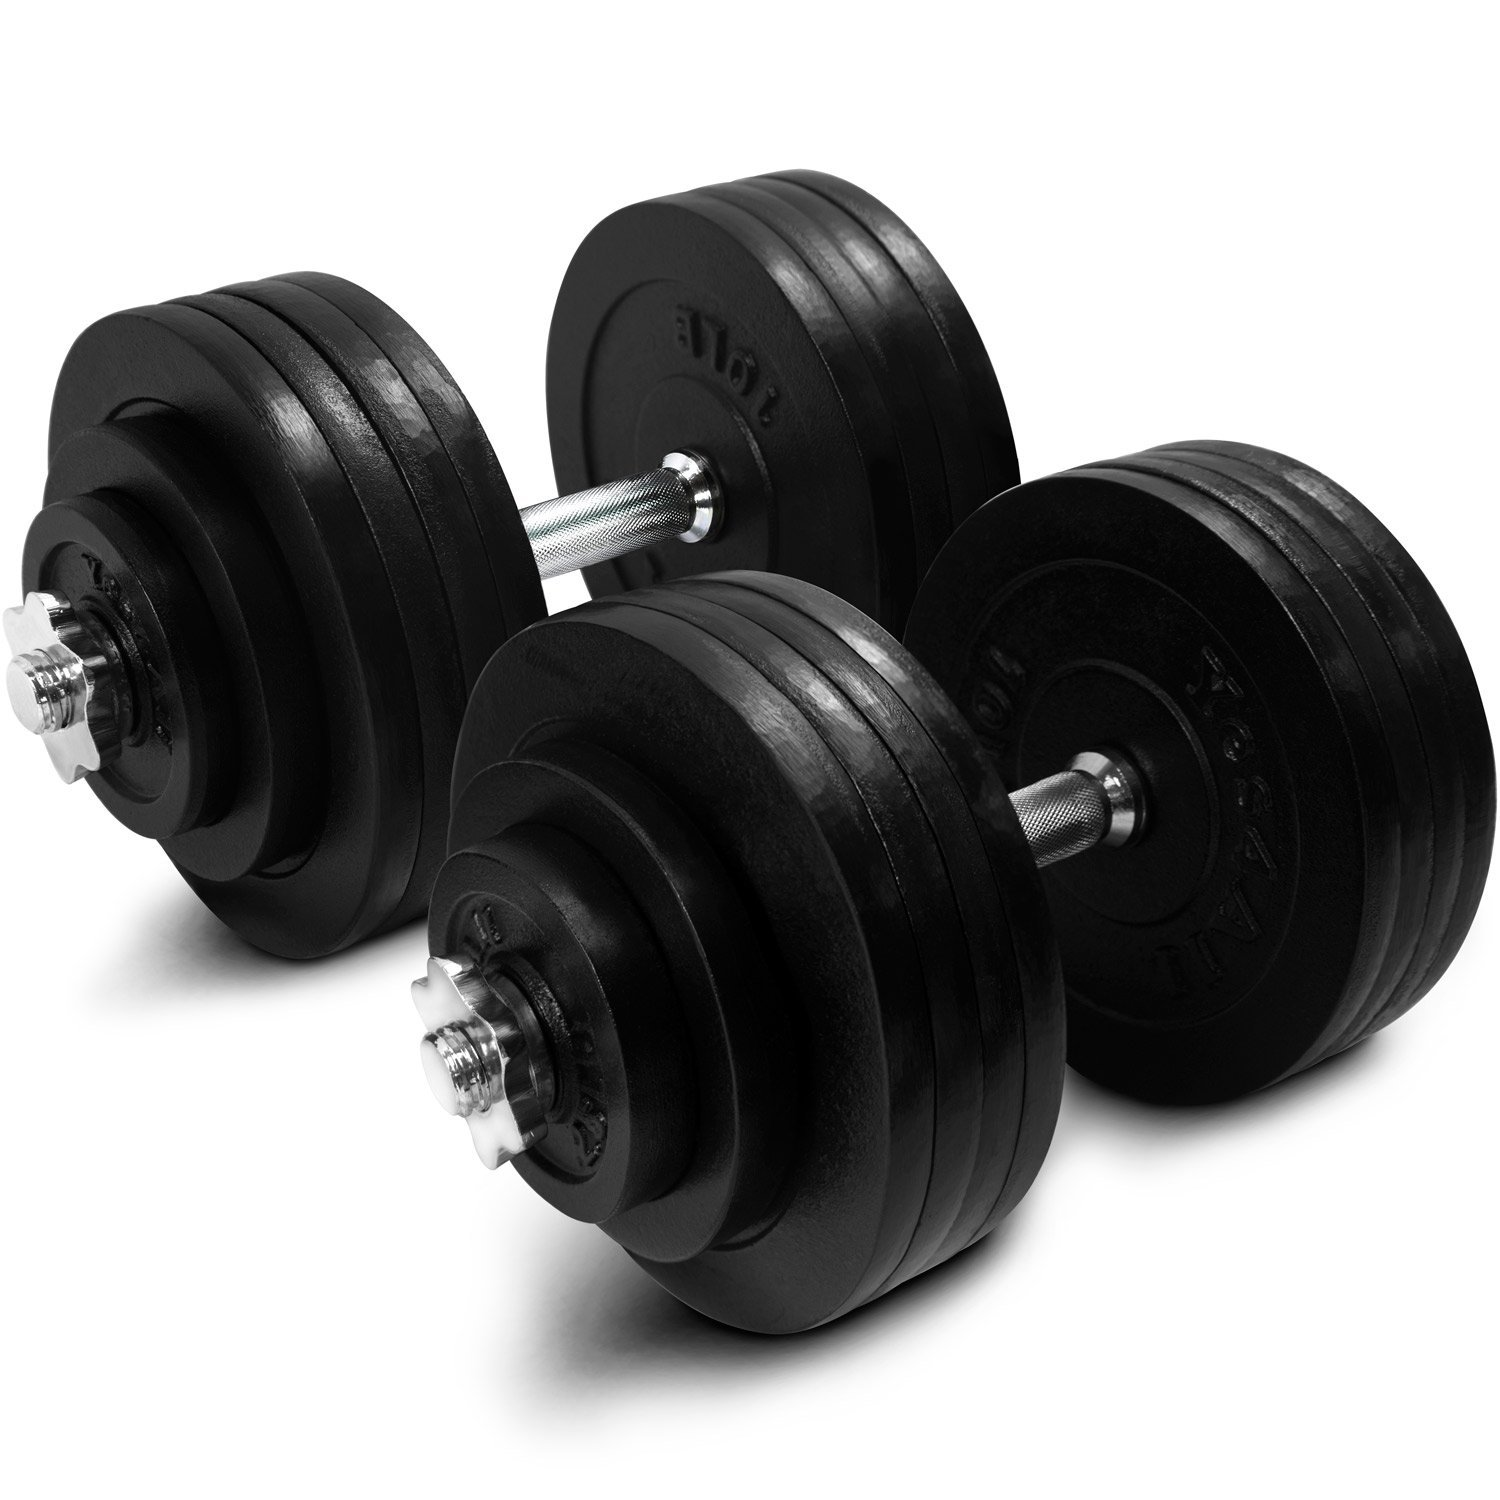 Yes4All Cast Iron Adjustable Dumbbells